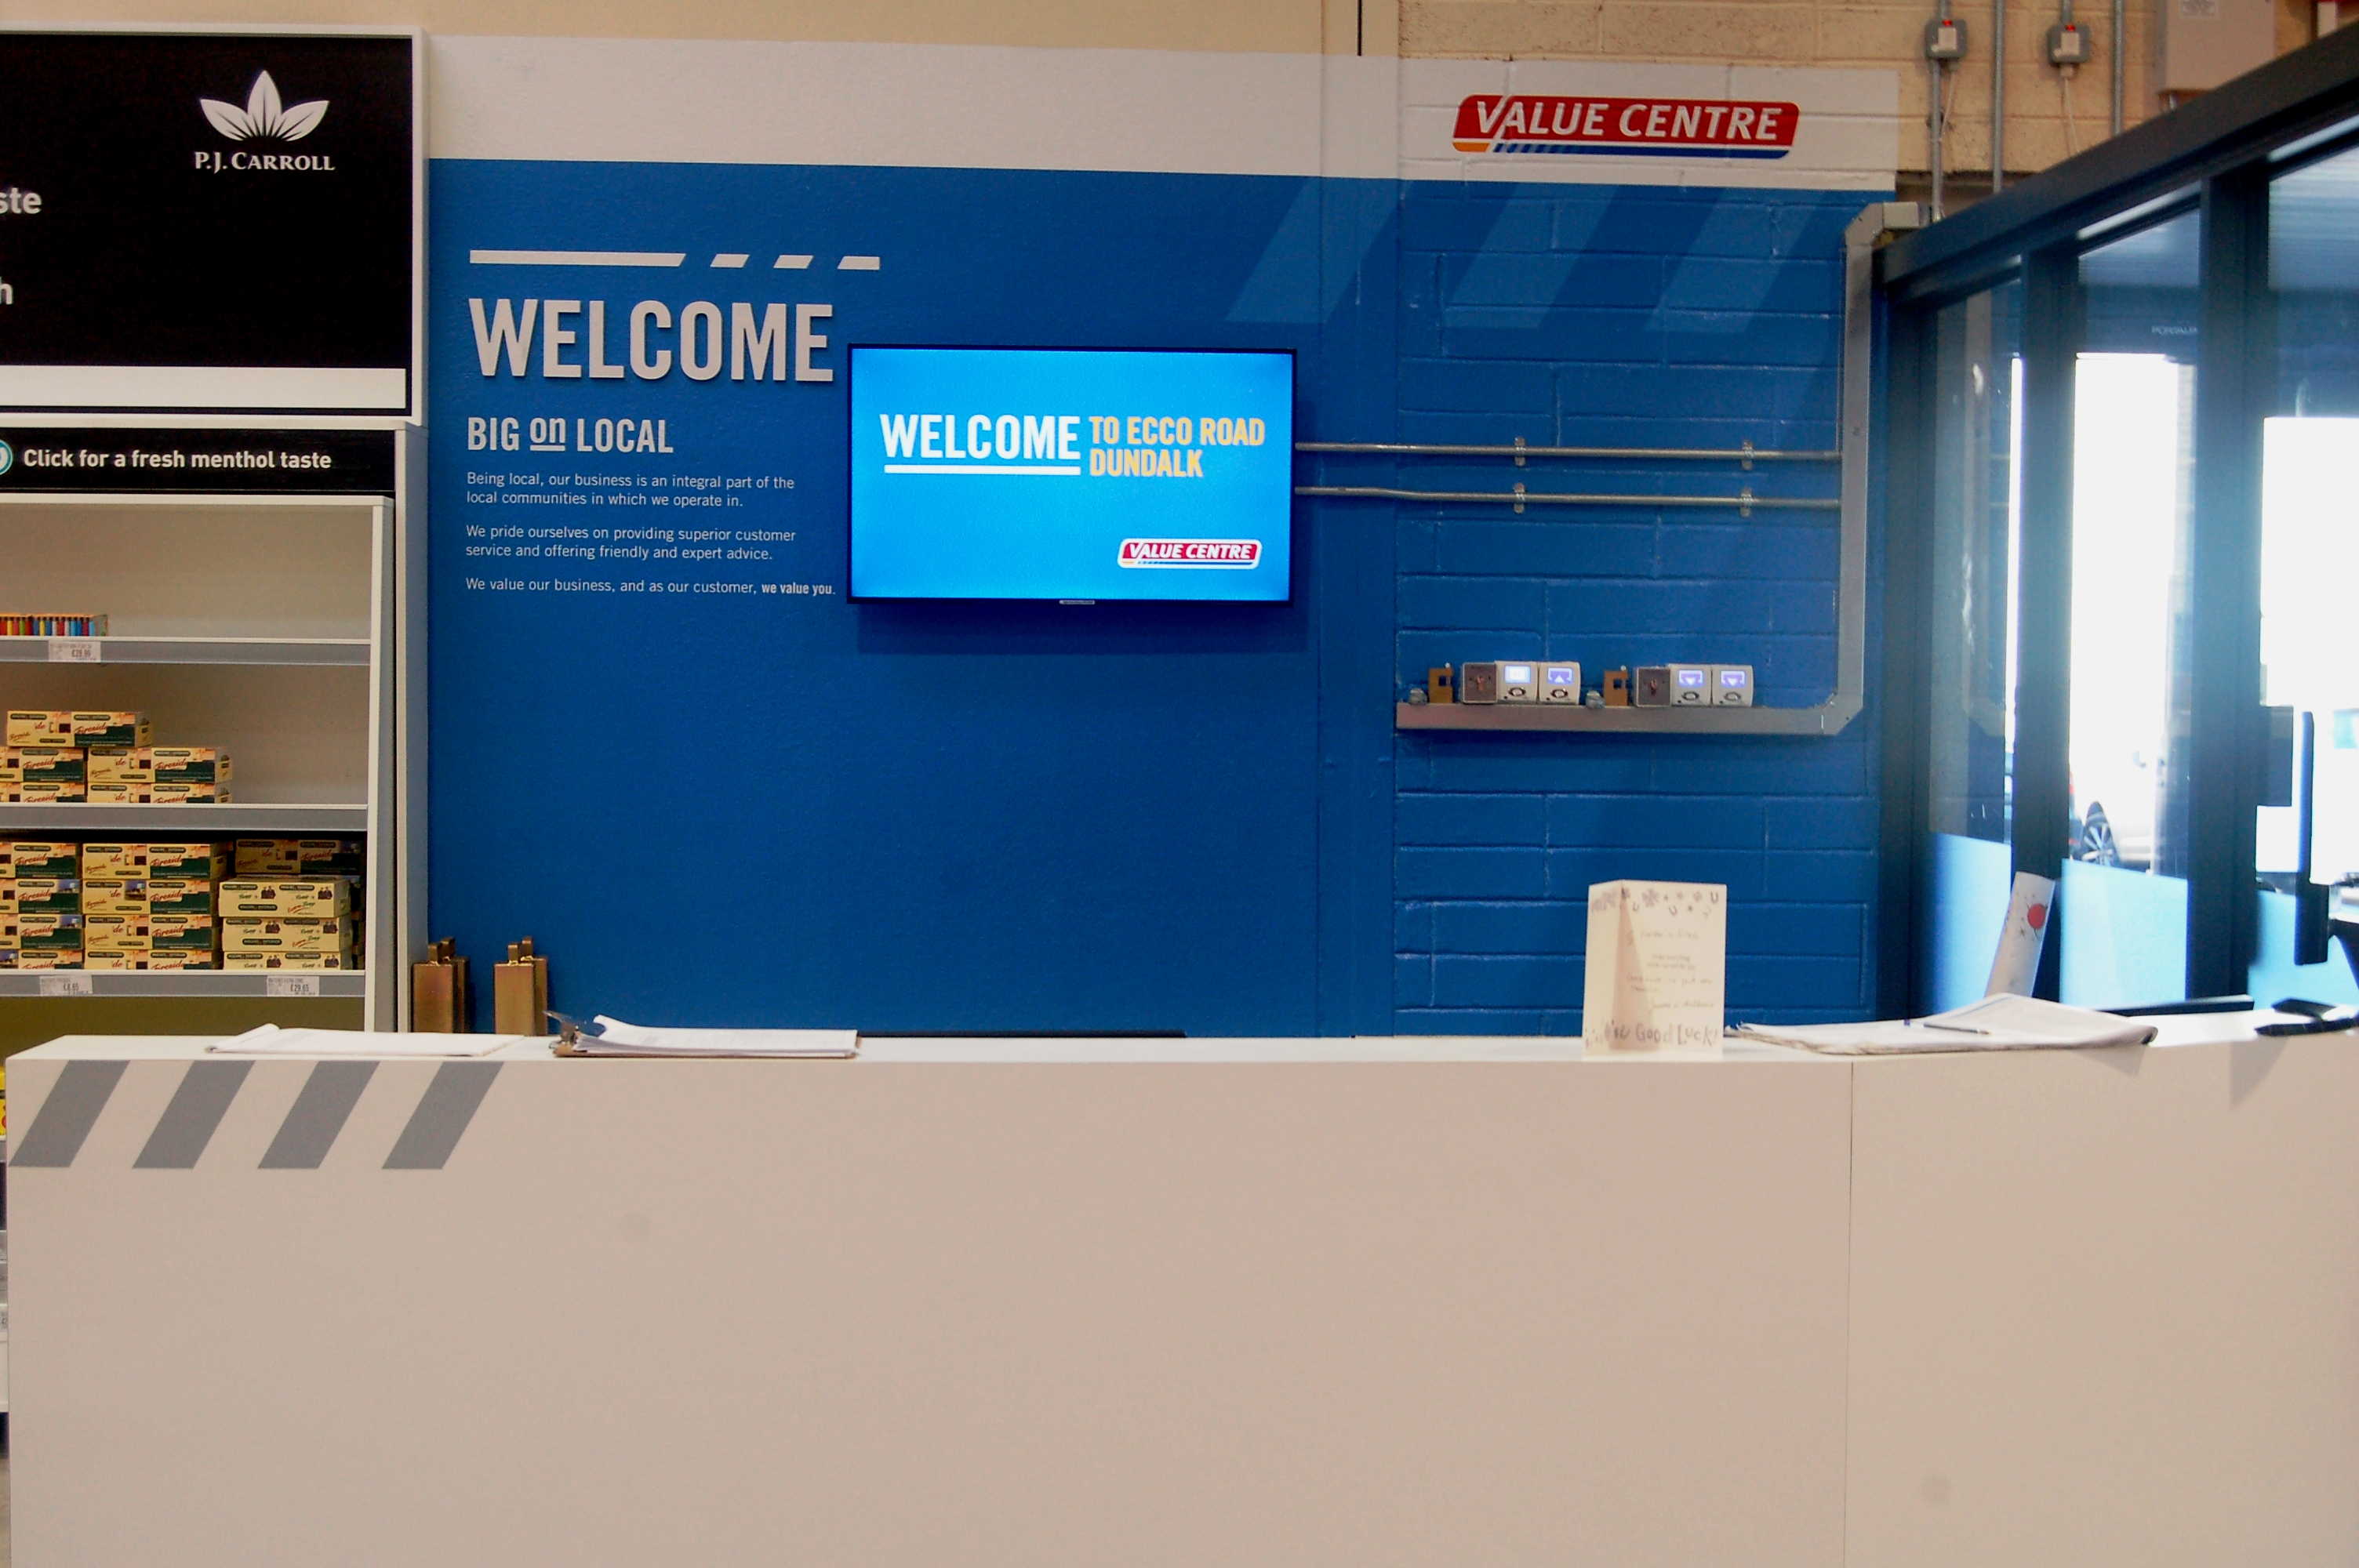 BWG - Value Centre Digital Roll Out - Digital Screen ...